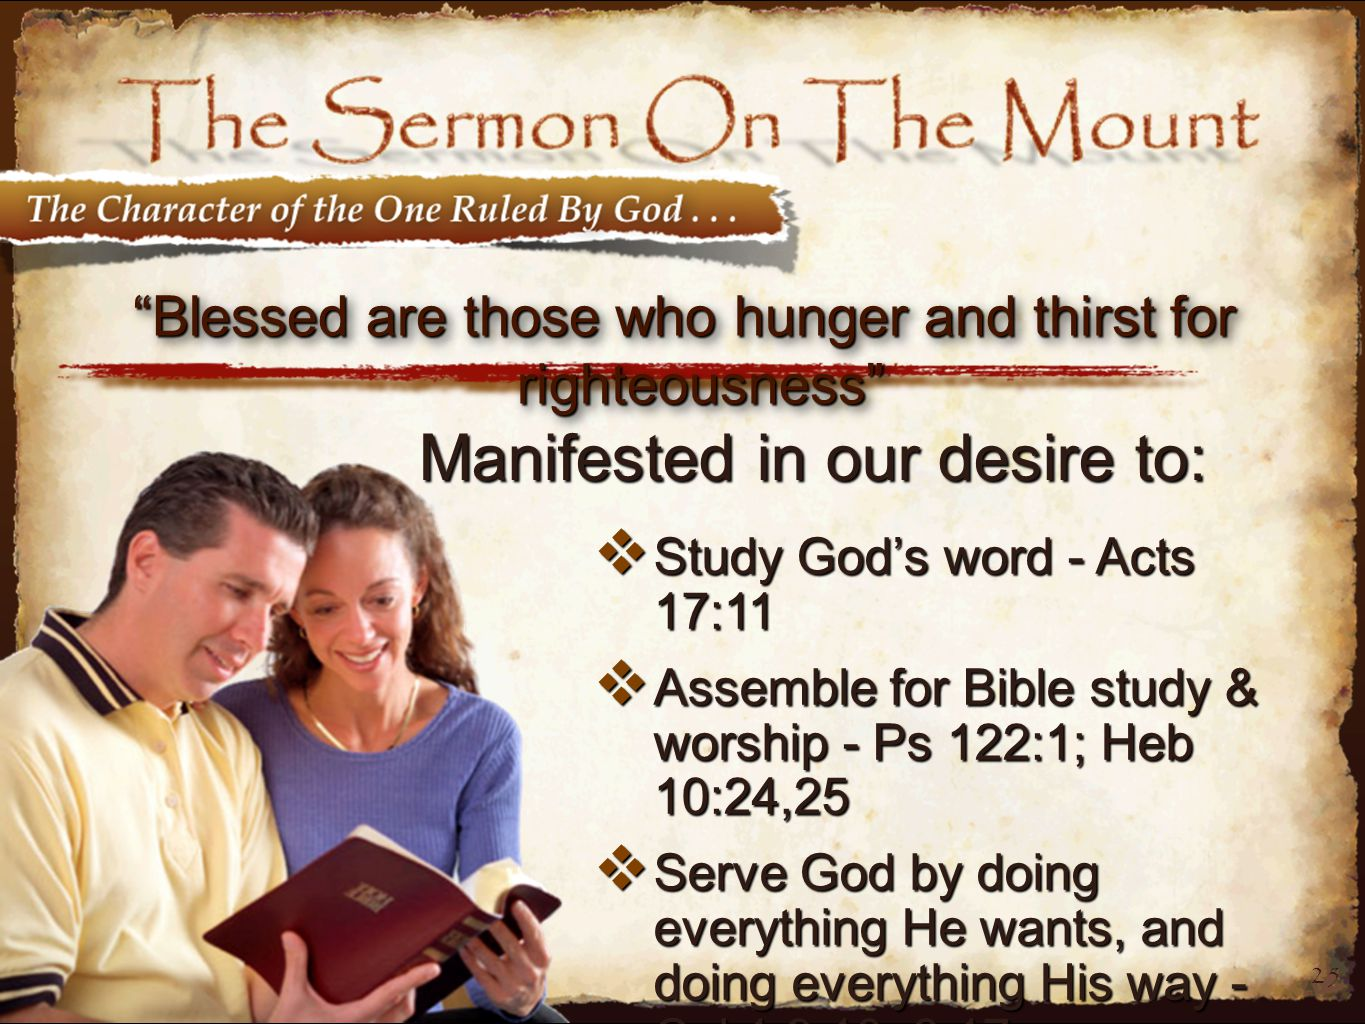 25 Blessed are those who hunger and thirst for righteousness  Study God's word - Acts 17:11  Assemble for Bible study & worship - Ps 122:1; Heb 10:24,25  Serve God by doing everything He wants, and doing everything His way - Col 1:9,10; 3:17 Manifested in our desire to: